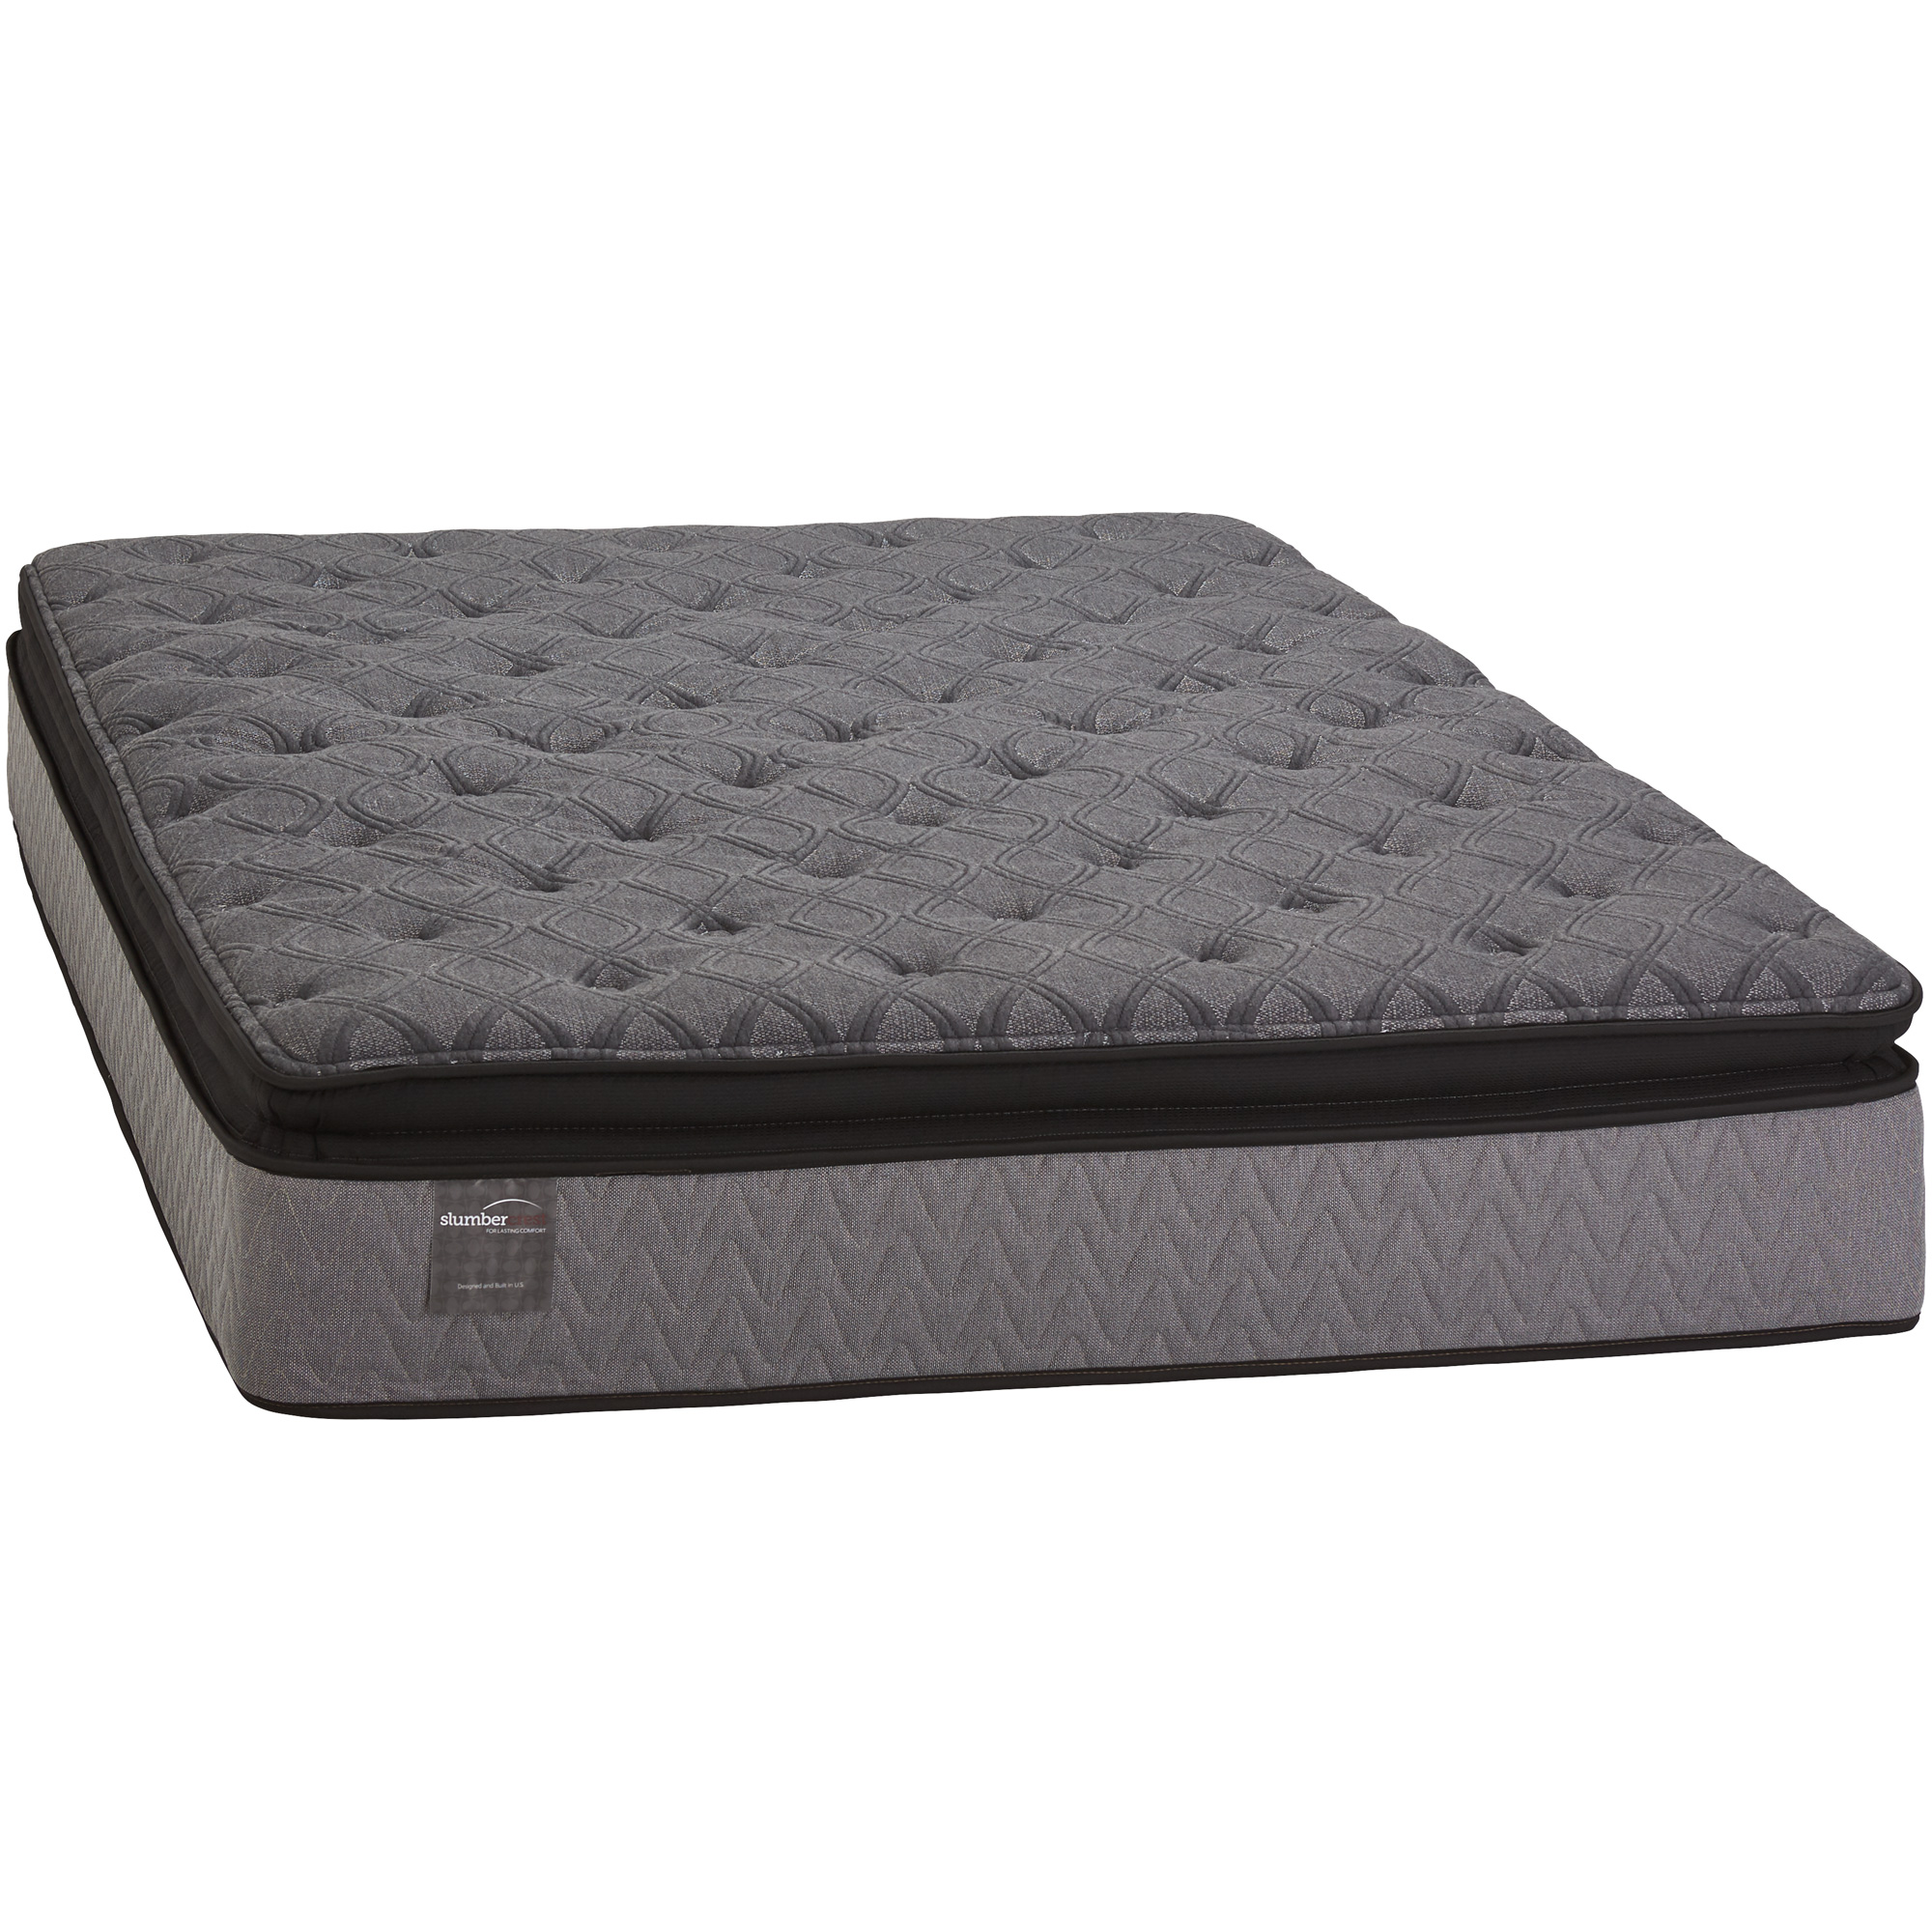 Slumbercrest Plush Pillowtop Queen Mattress